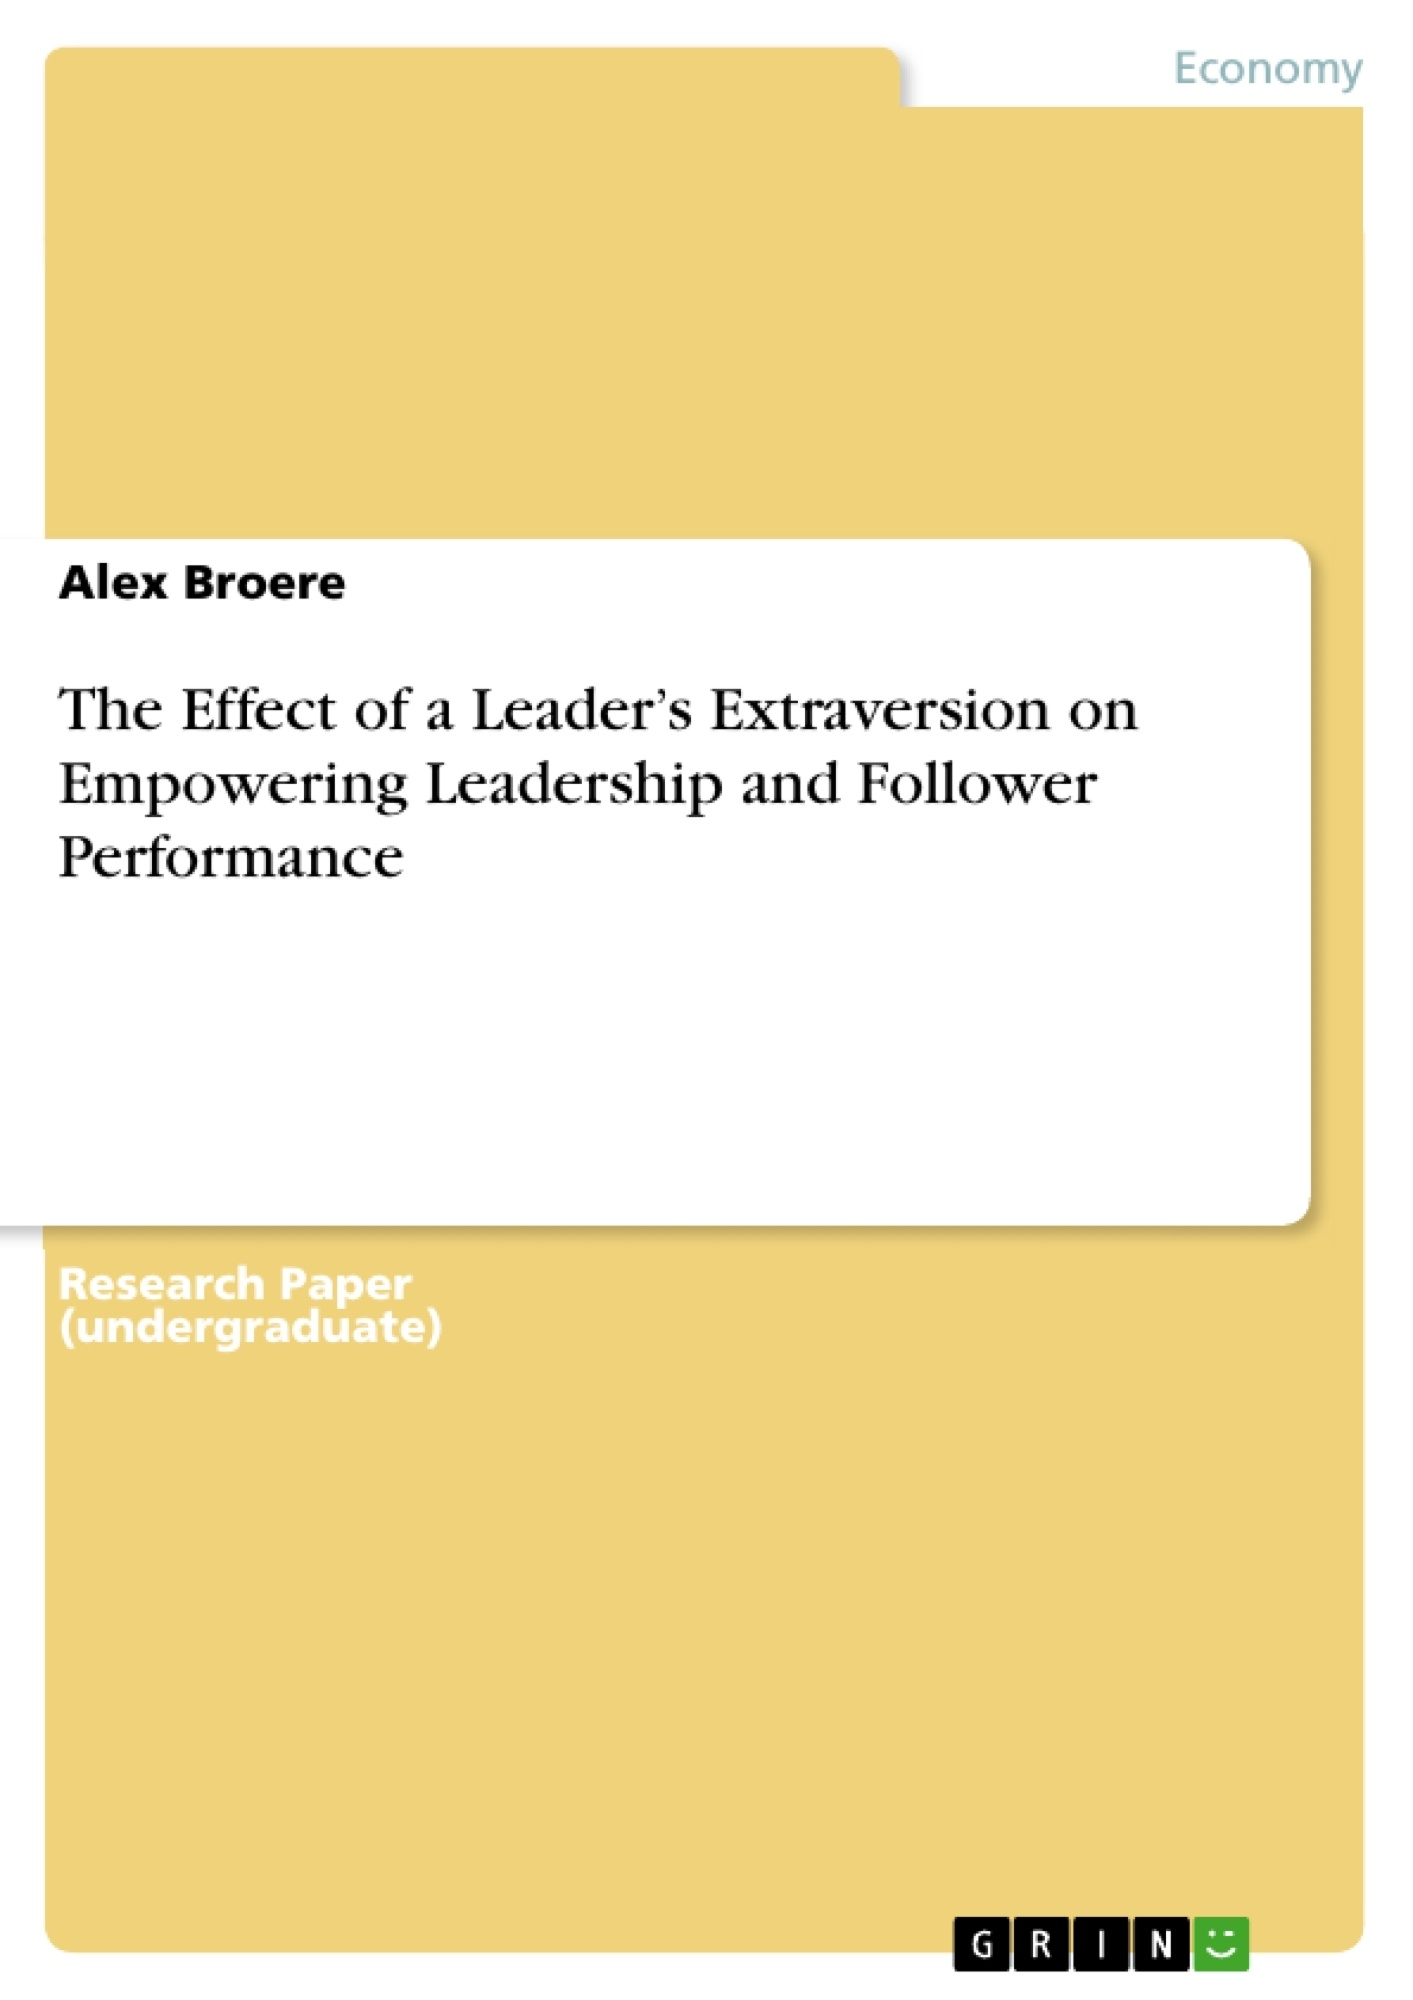 Title: The Effect of a Leader's Extraversion on Empowering Leadership and Follower Performance